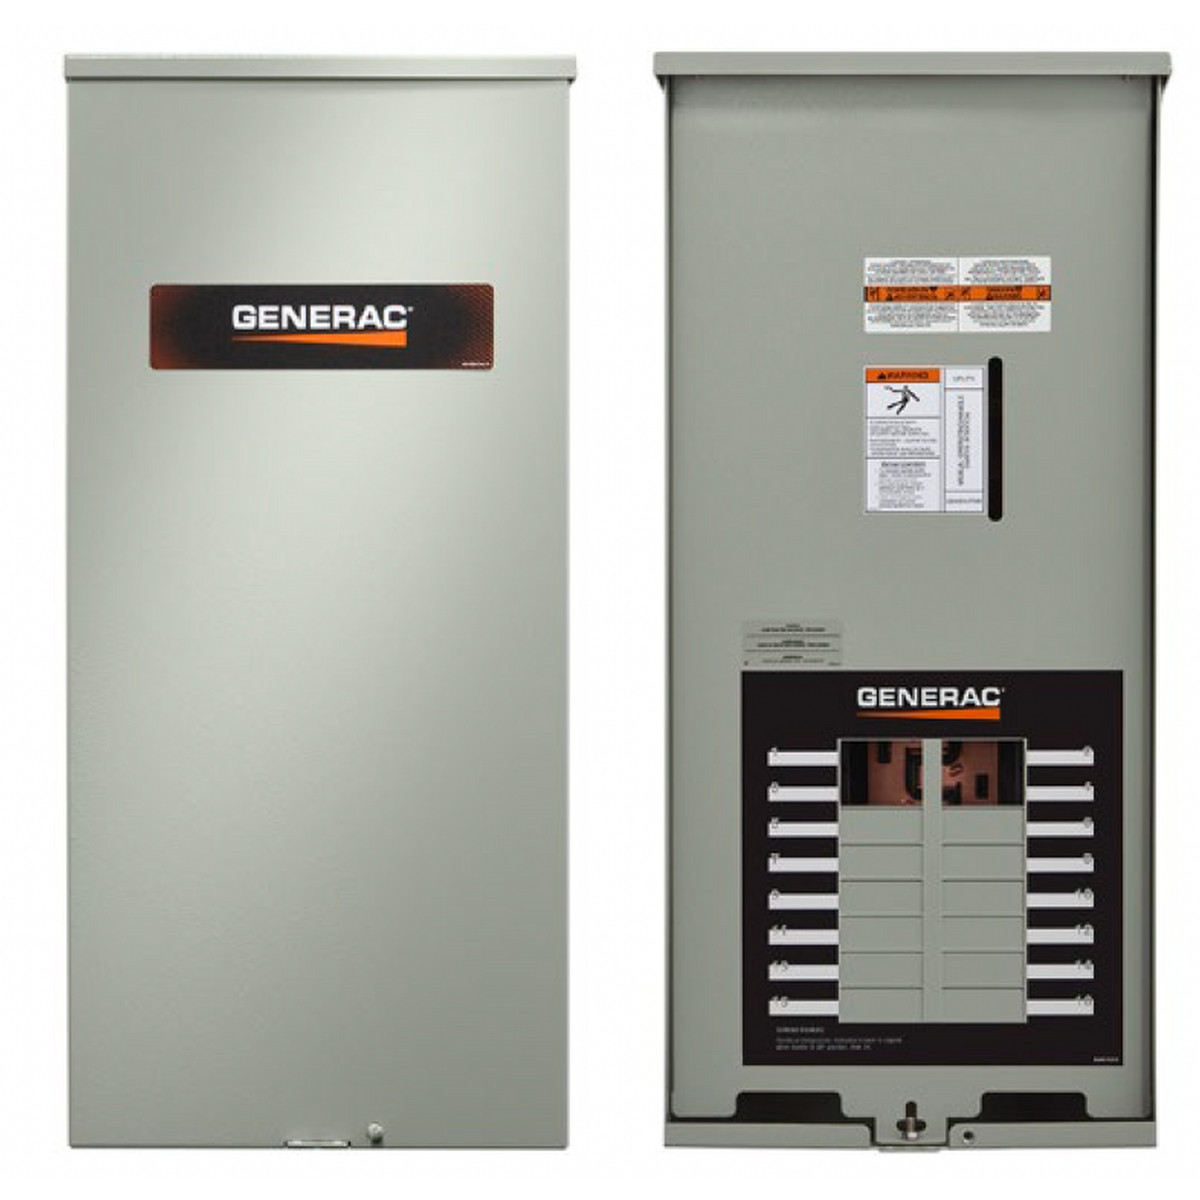 hight resolution of  diagram generac rxg16eza3 100a 1 120 240v nema 3r automatic transfer switch on whole house